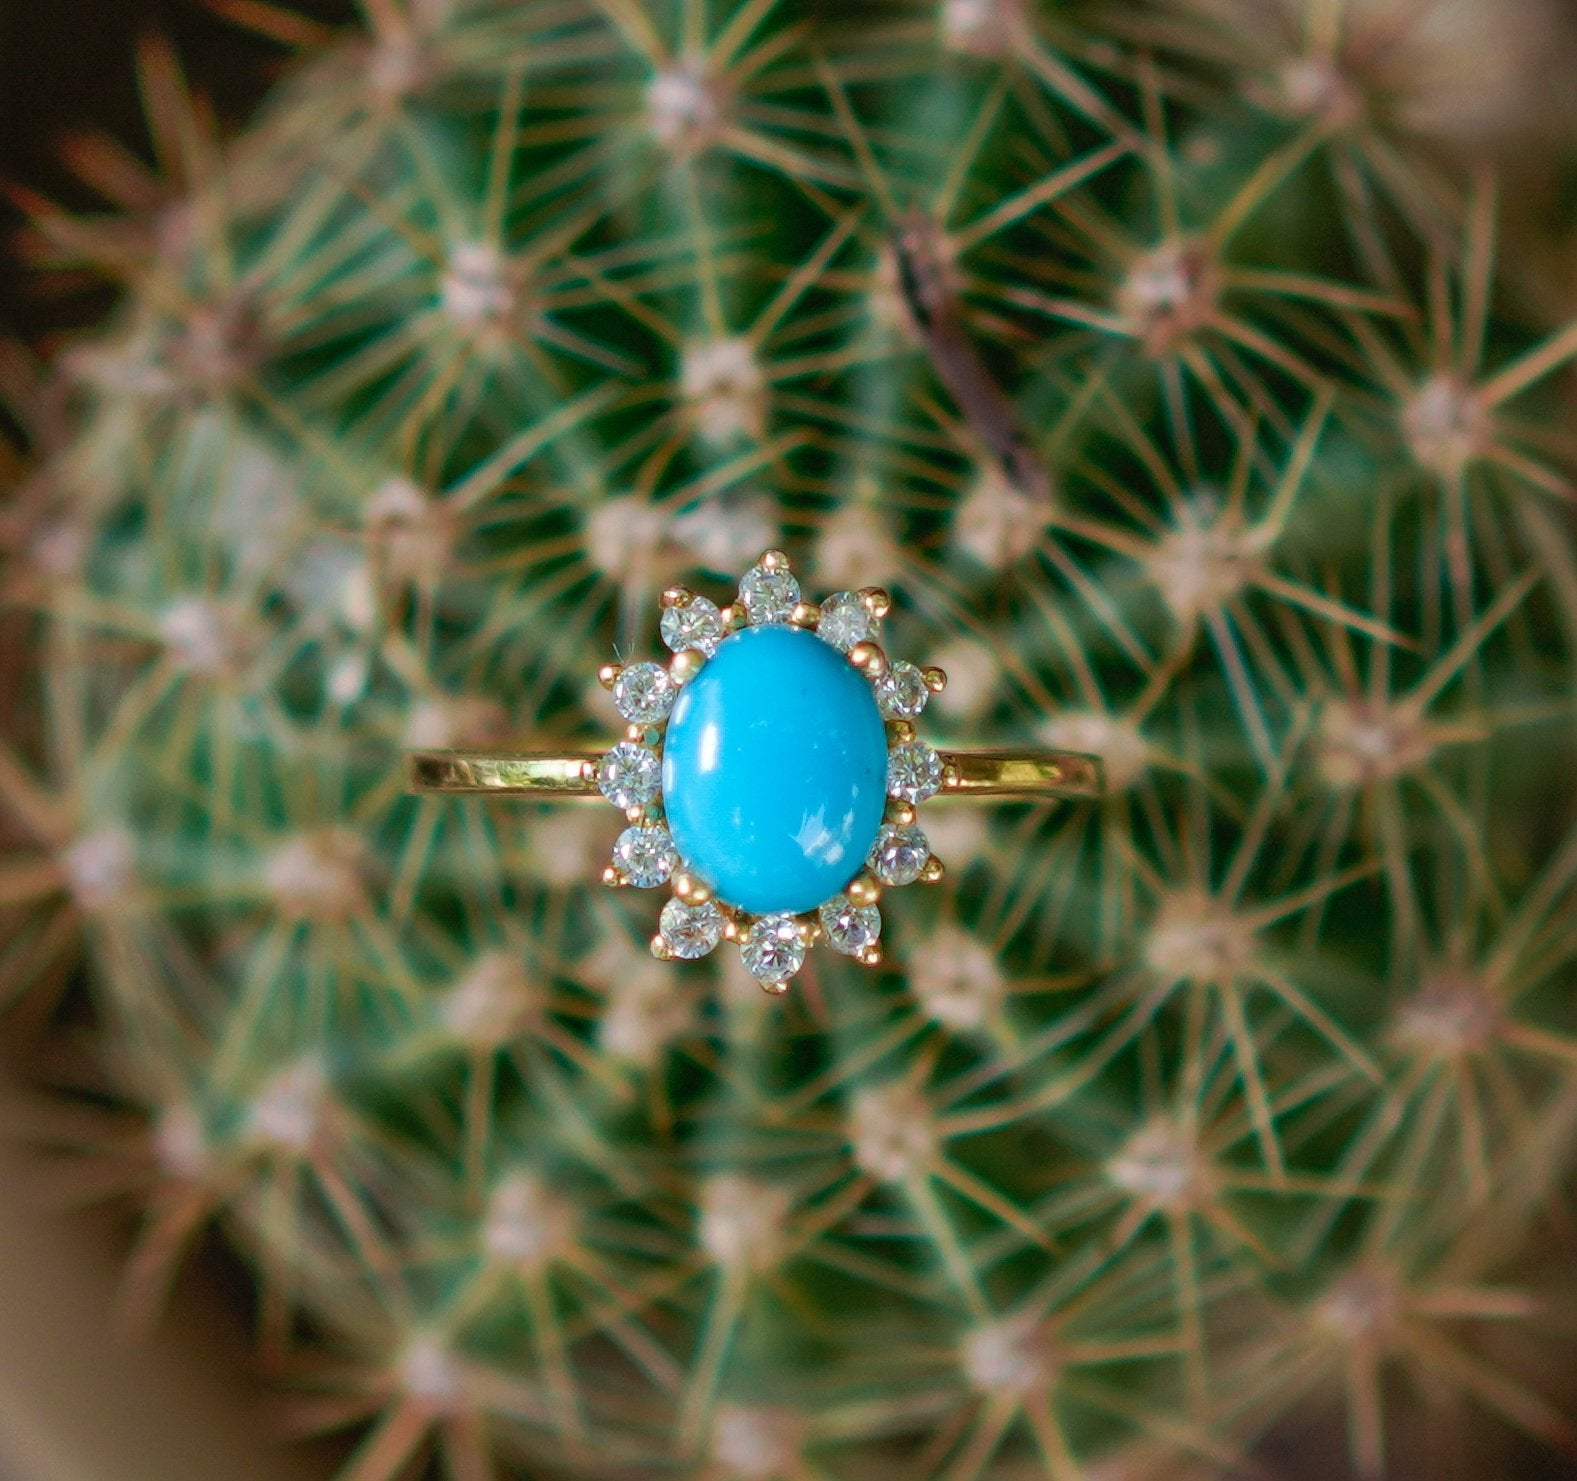 Vintage Inspired Sleeping Beauty Turquoise Halo Diamond Engagement Ring AR-2090